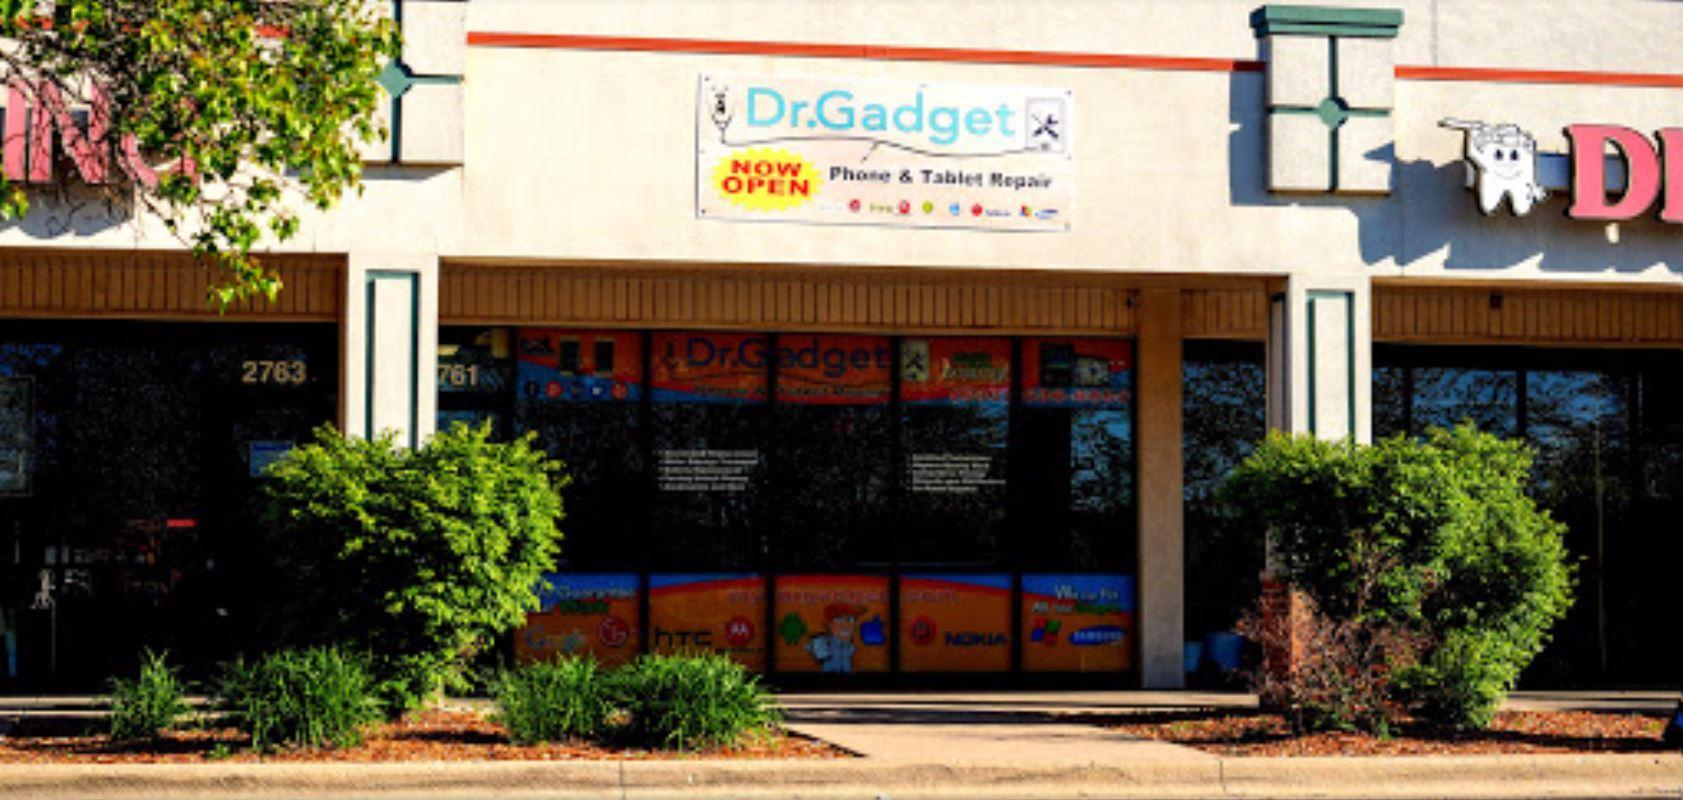 Dr. Gadget Phone and Tablet Repair - Oswego image 2